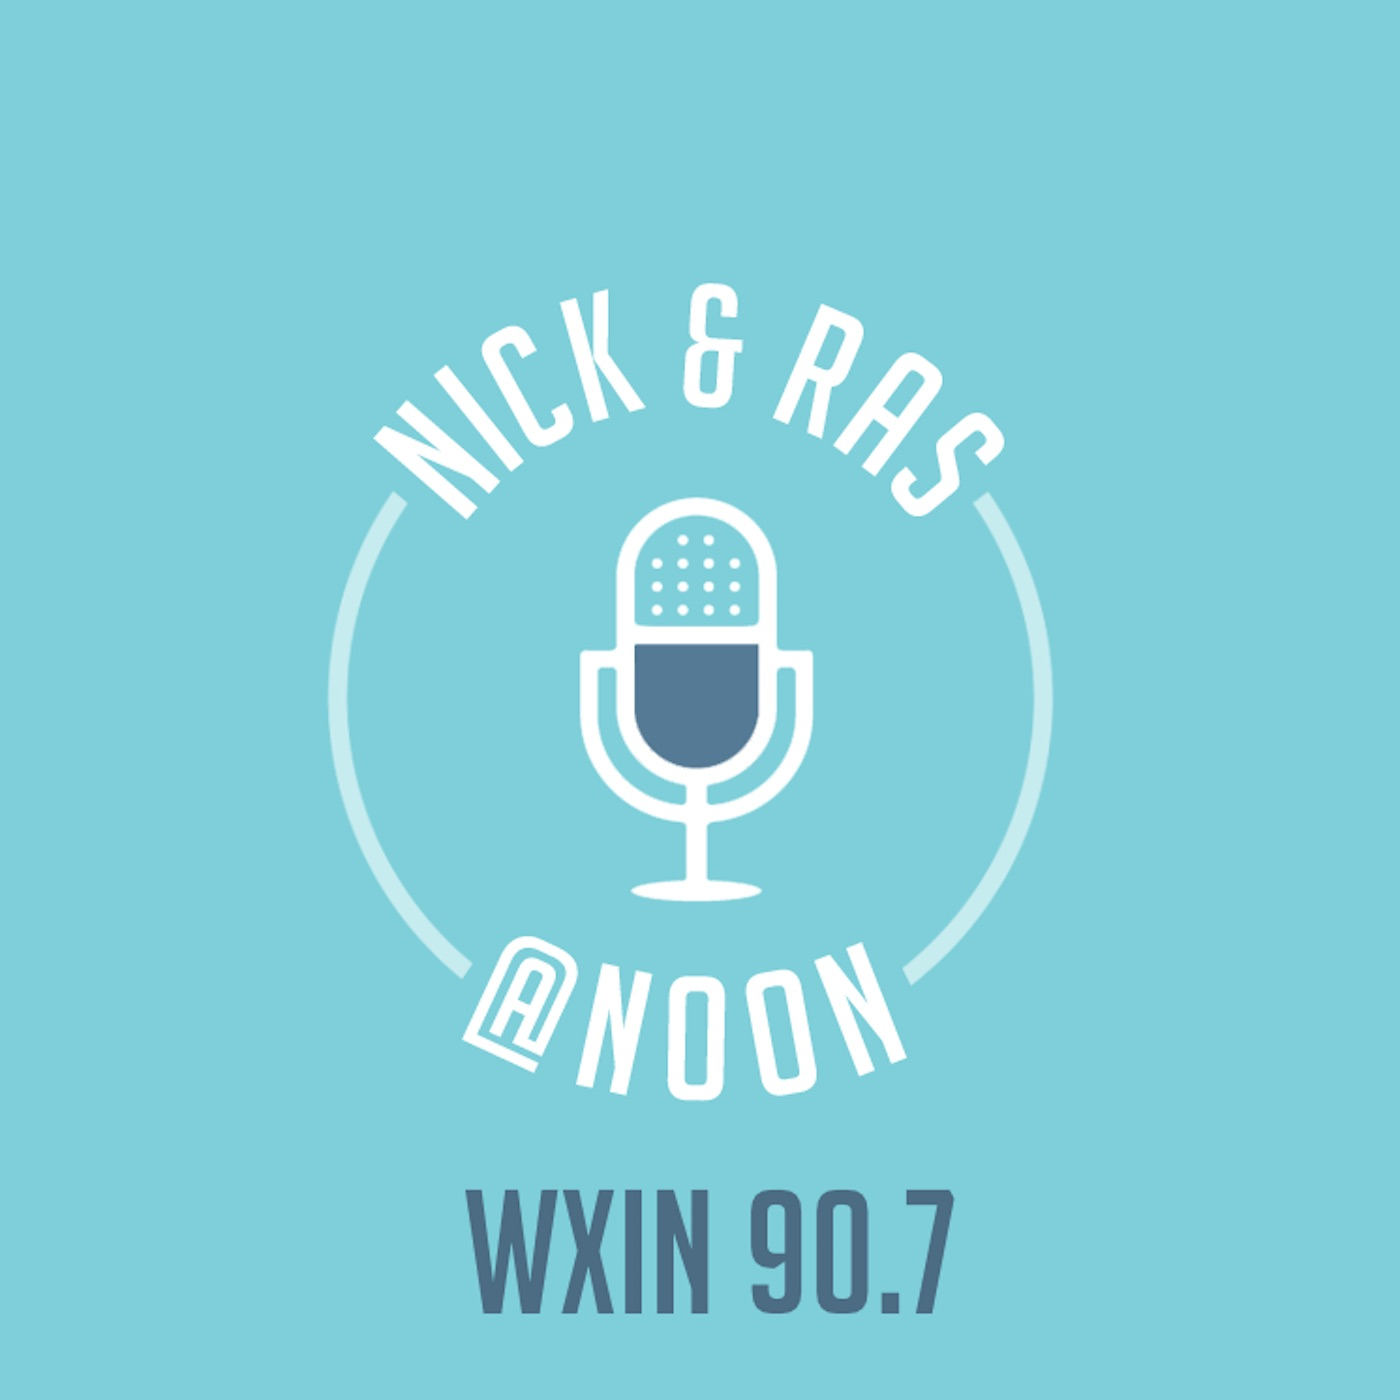 Nick and Ras at Noon